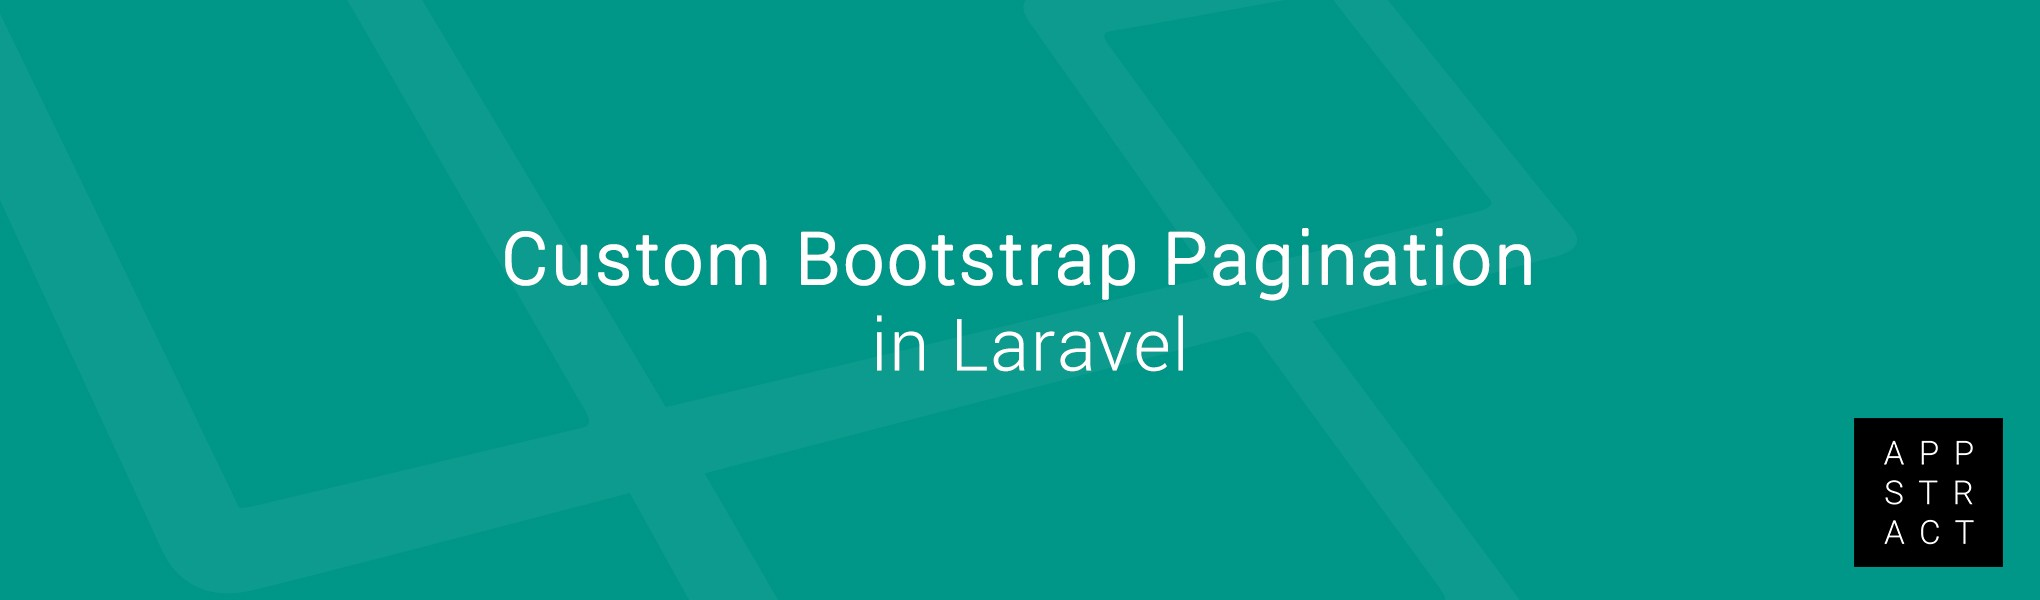 Custom Bootstrap Pagination in Laravel - Appstract - Medium